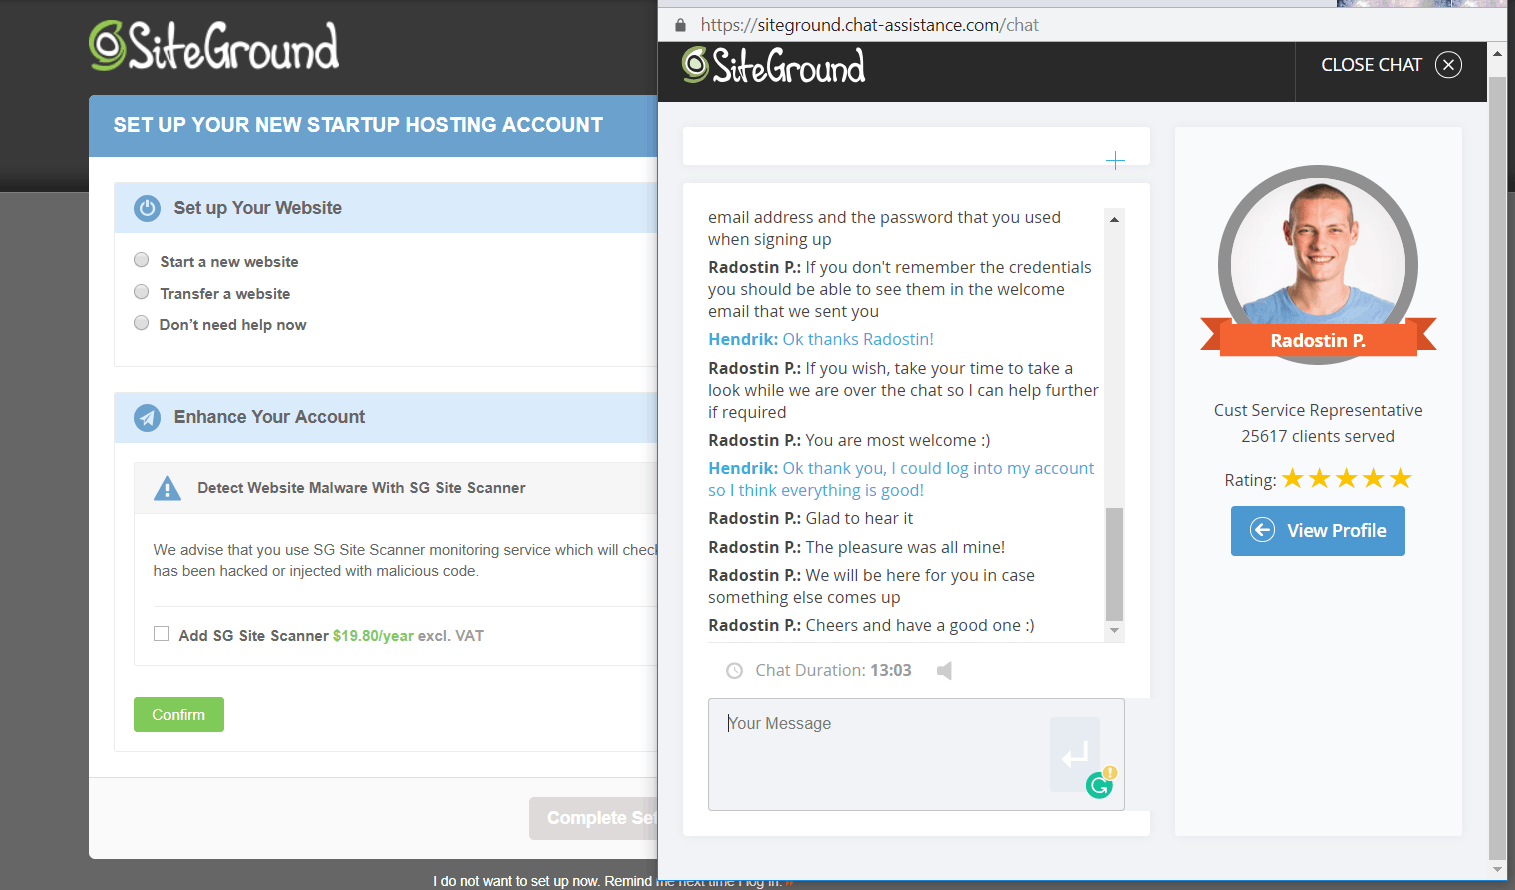 SiteGround Support Chat